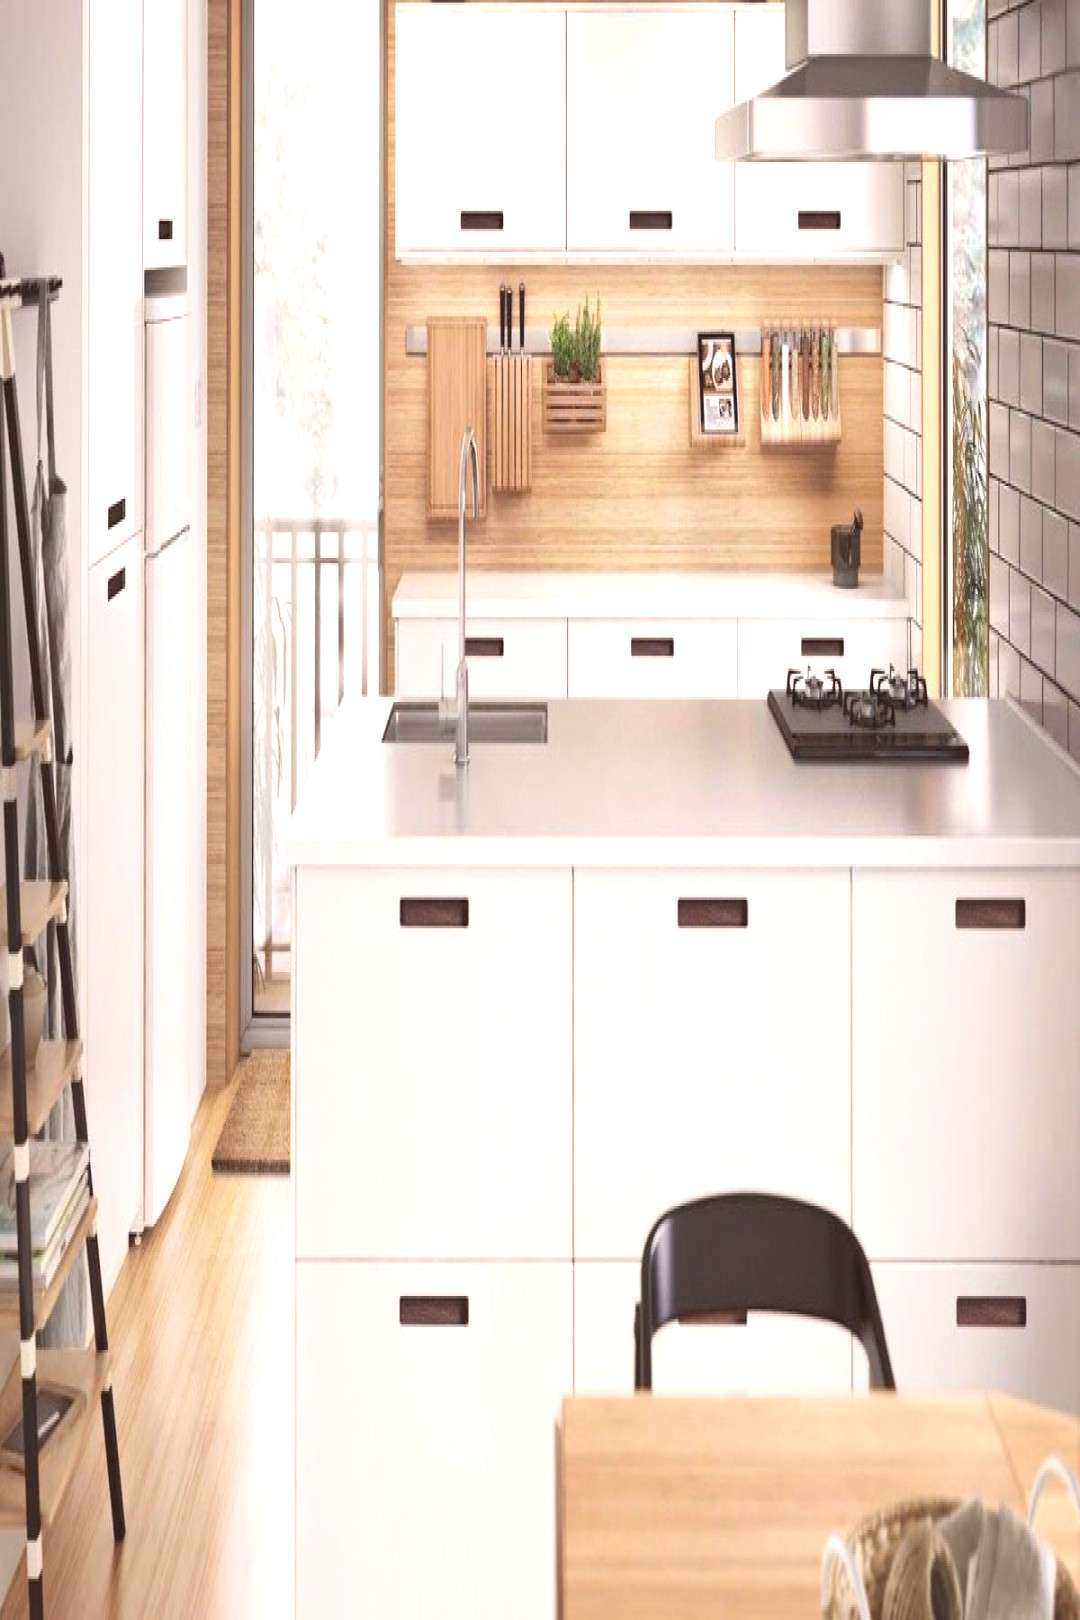 Kitchen Kitchen Cabinet Catalog Kitchen Cabinets Pictures Ikea Kitchen The 2020 Ikea Catalogue Is